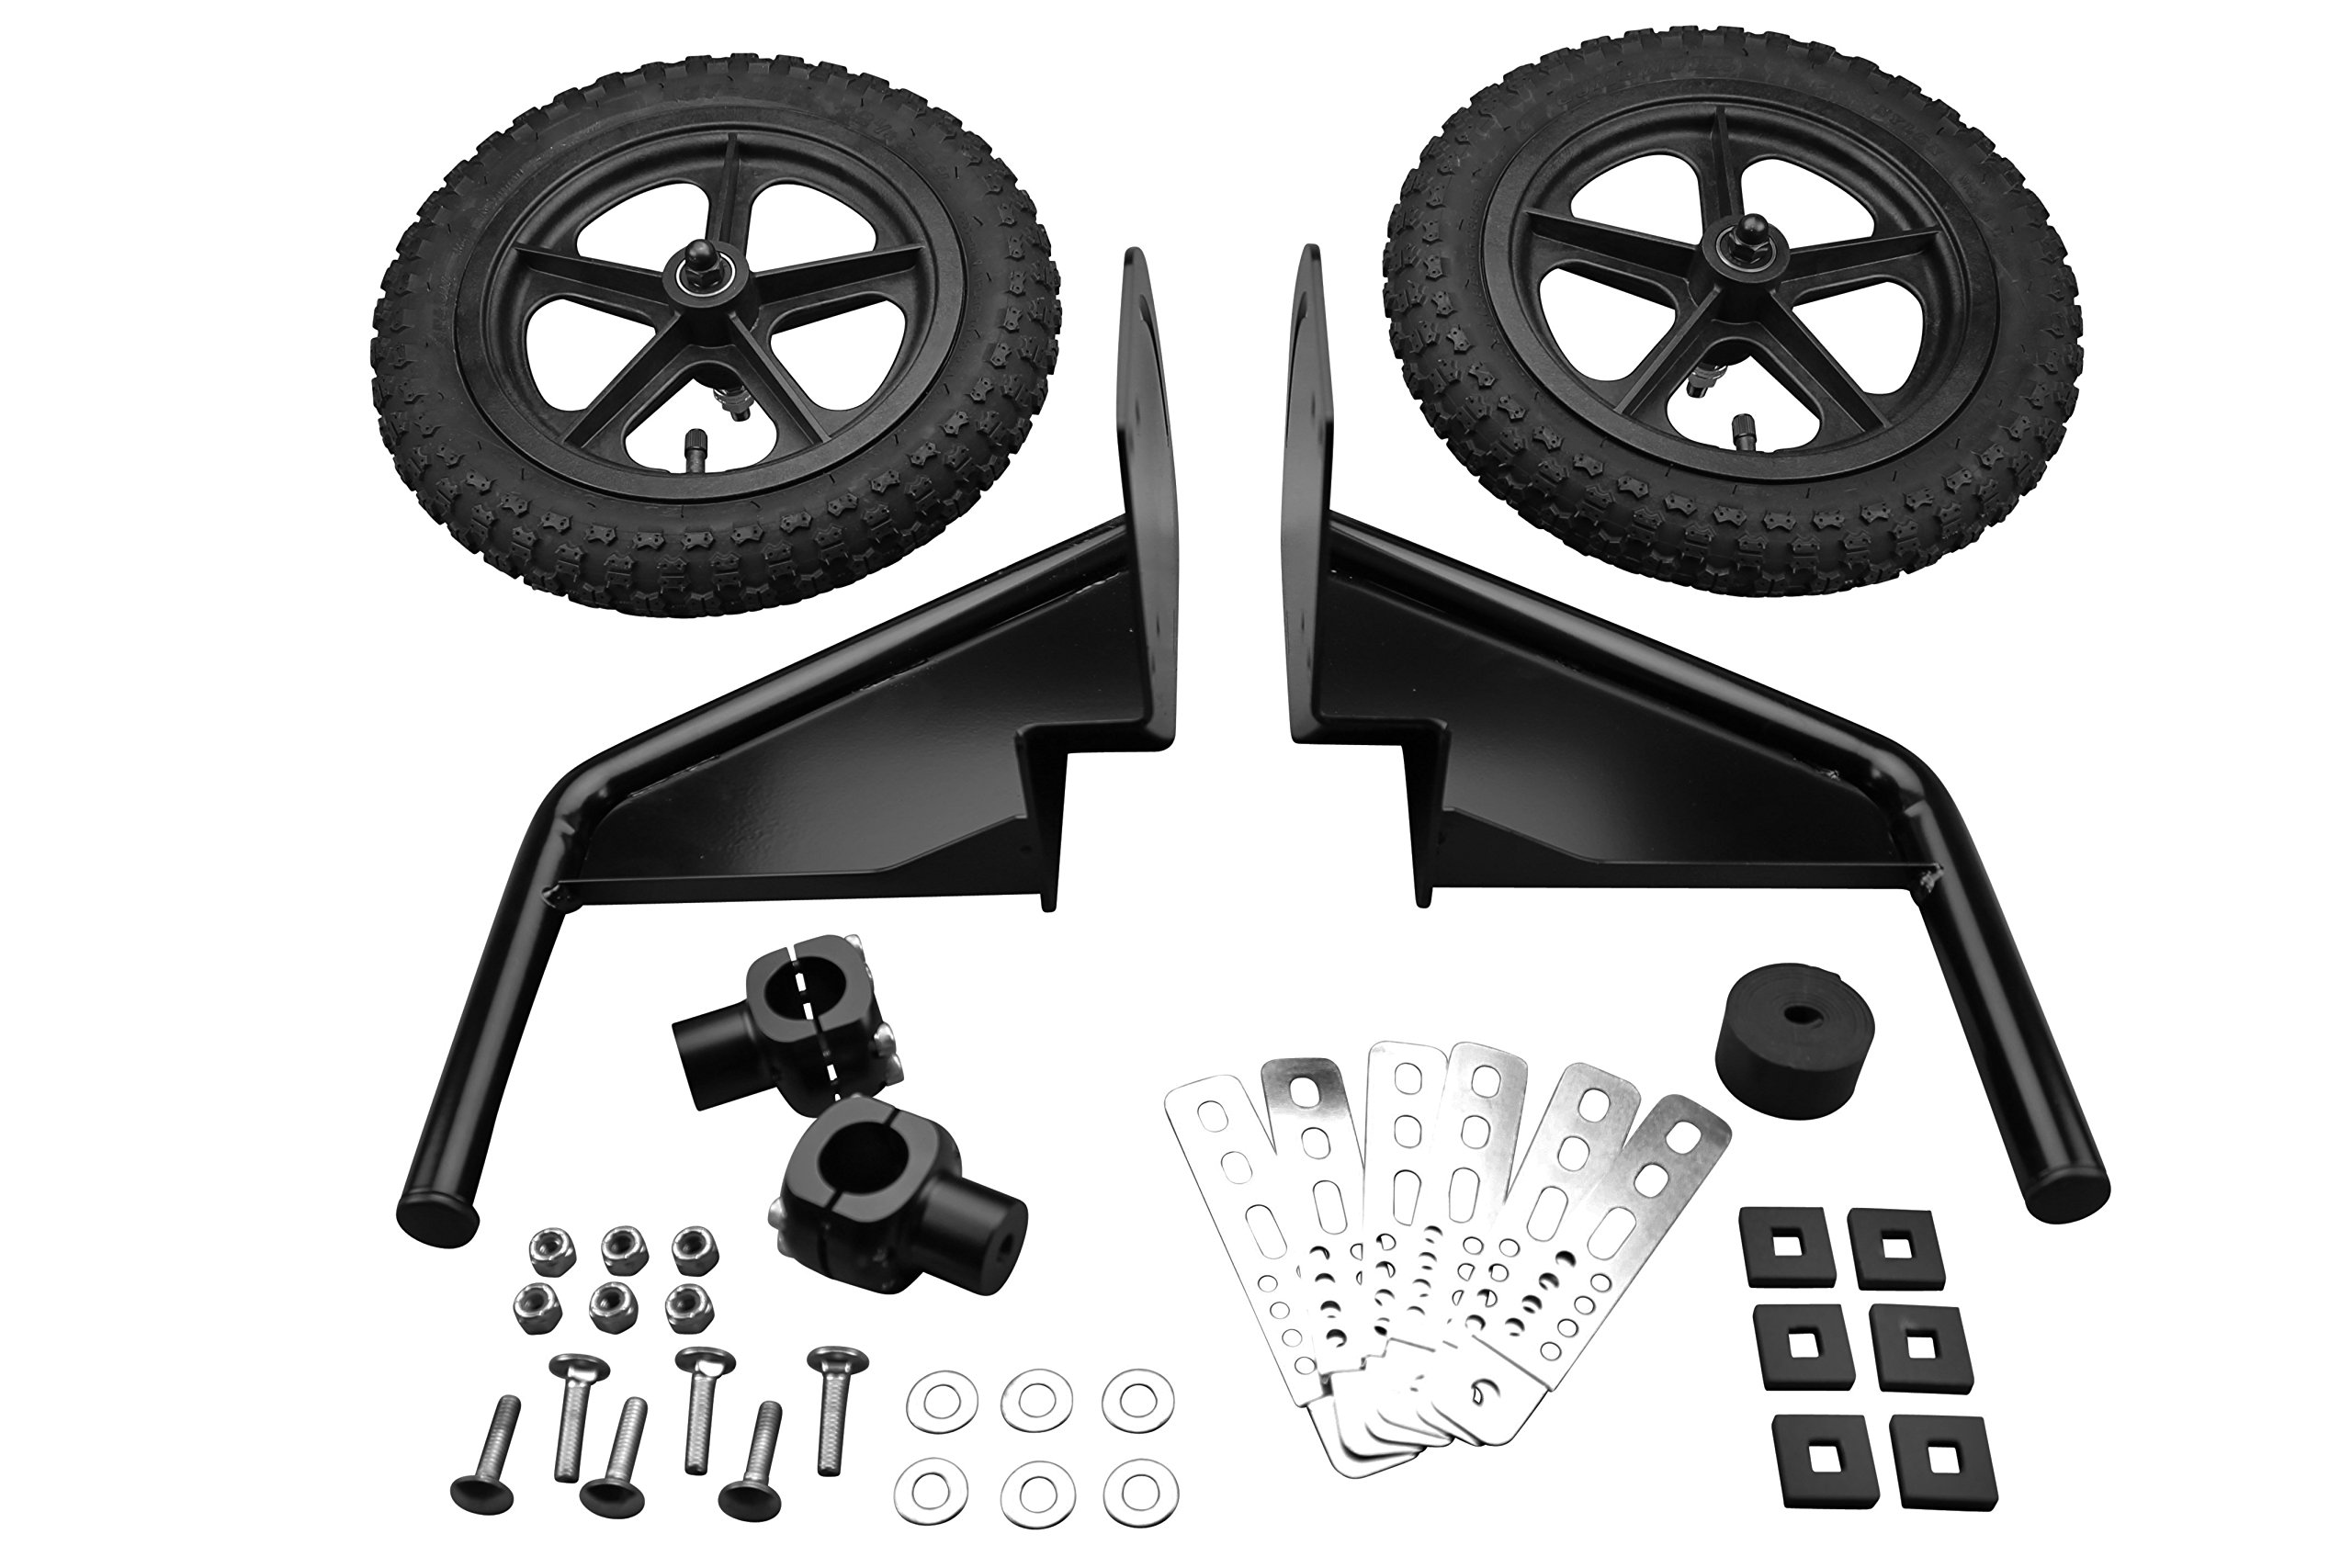 FATWHEELS (Small HD) Stabilizer Kit for 16-20'' bike (supports rider up tp 250 lbs.)